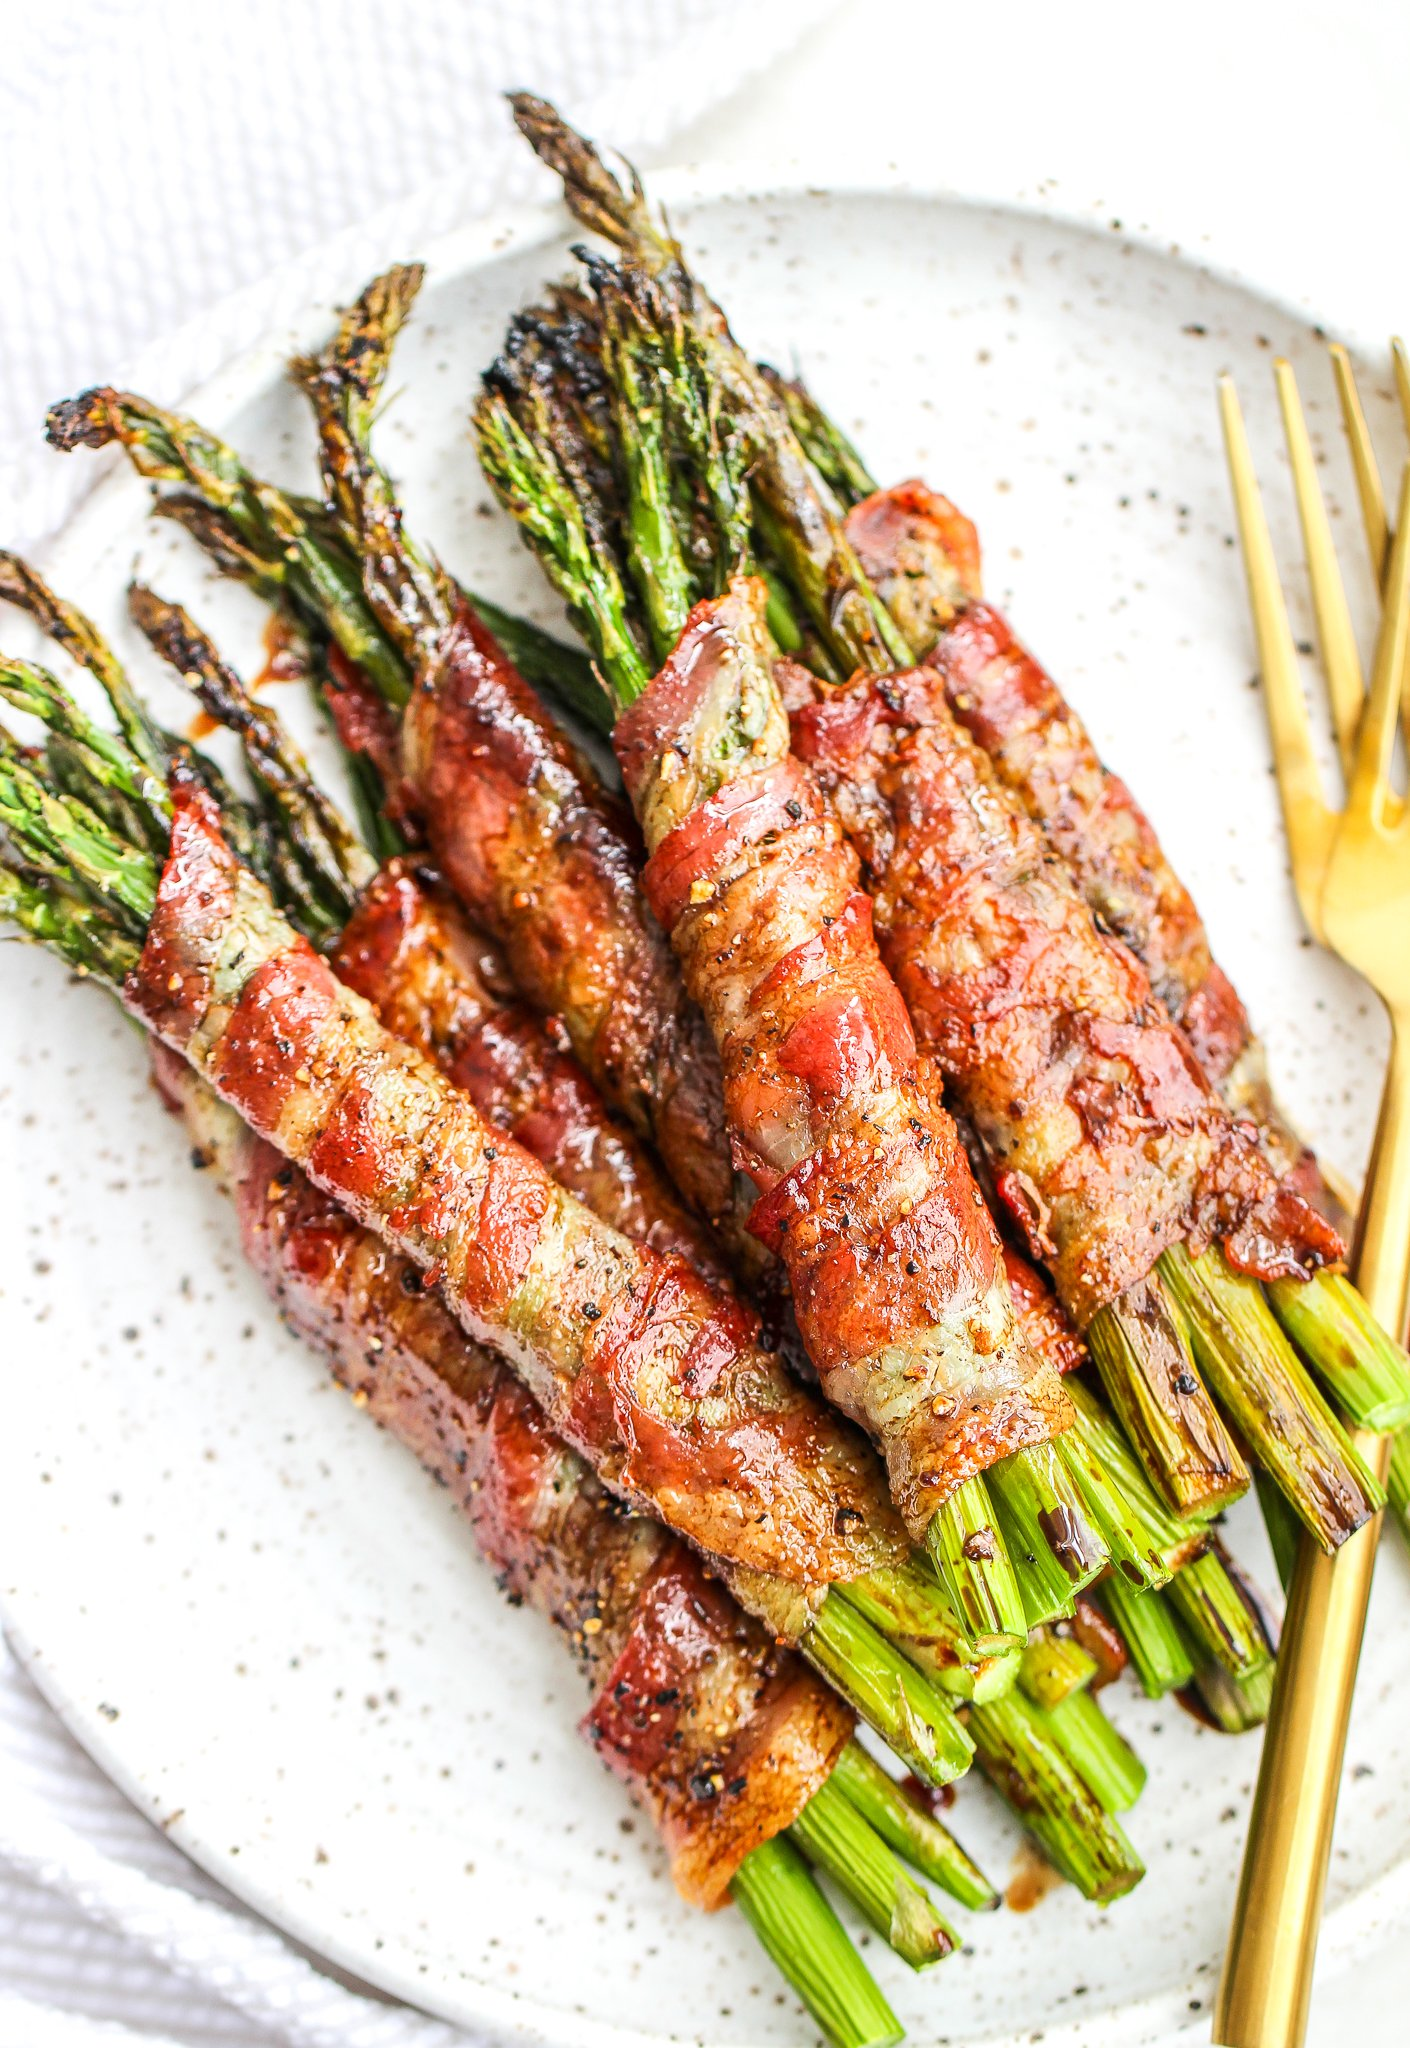 bacon wrapped asparagus bundles drizzled with balsamic reduction stacked on a ceramic plate with gold forks on the side of the plate